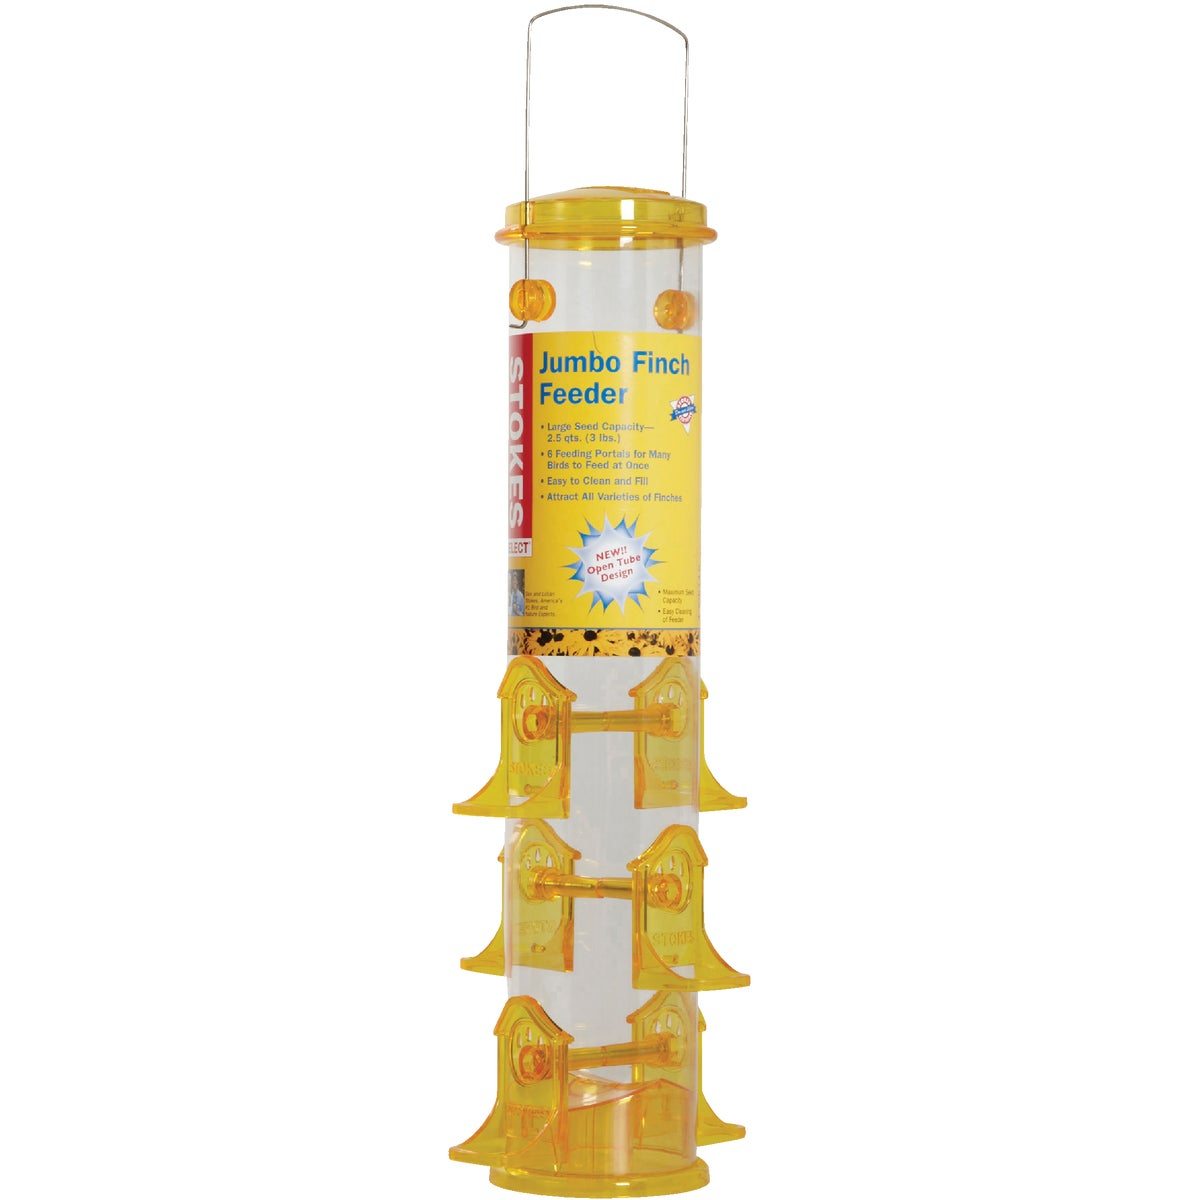 JUMBO FINCH TUBE FEEDER